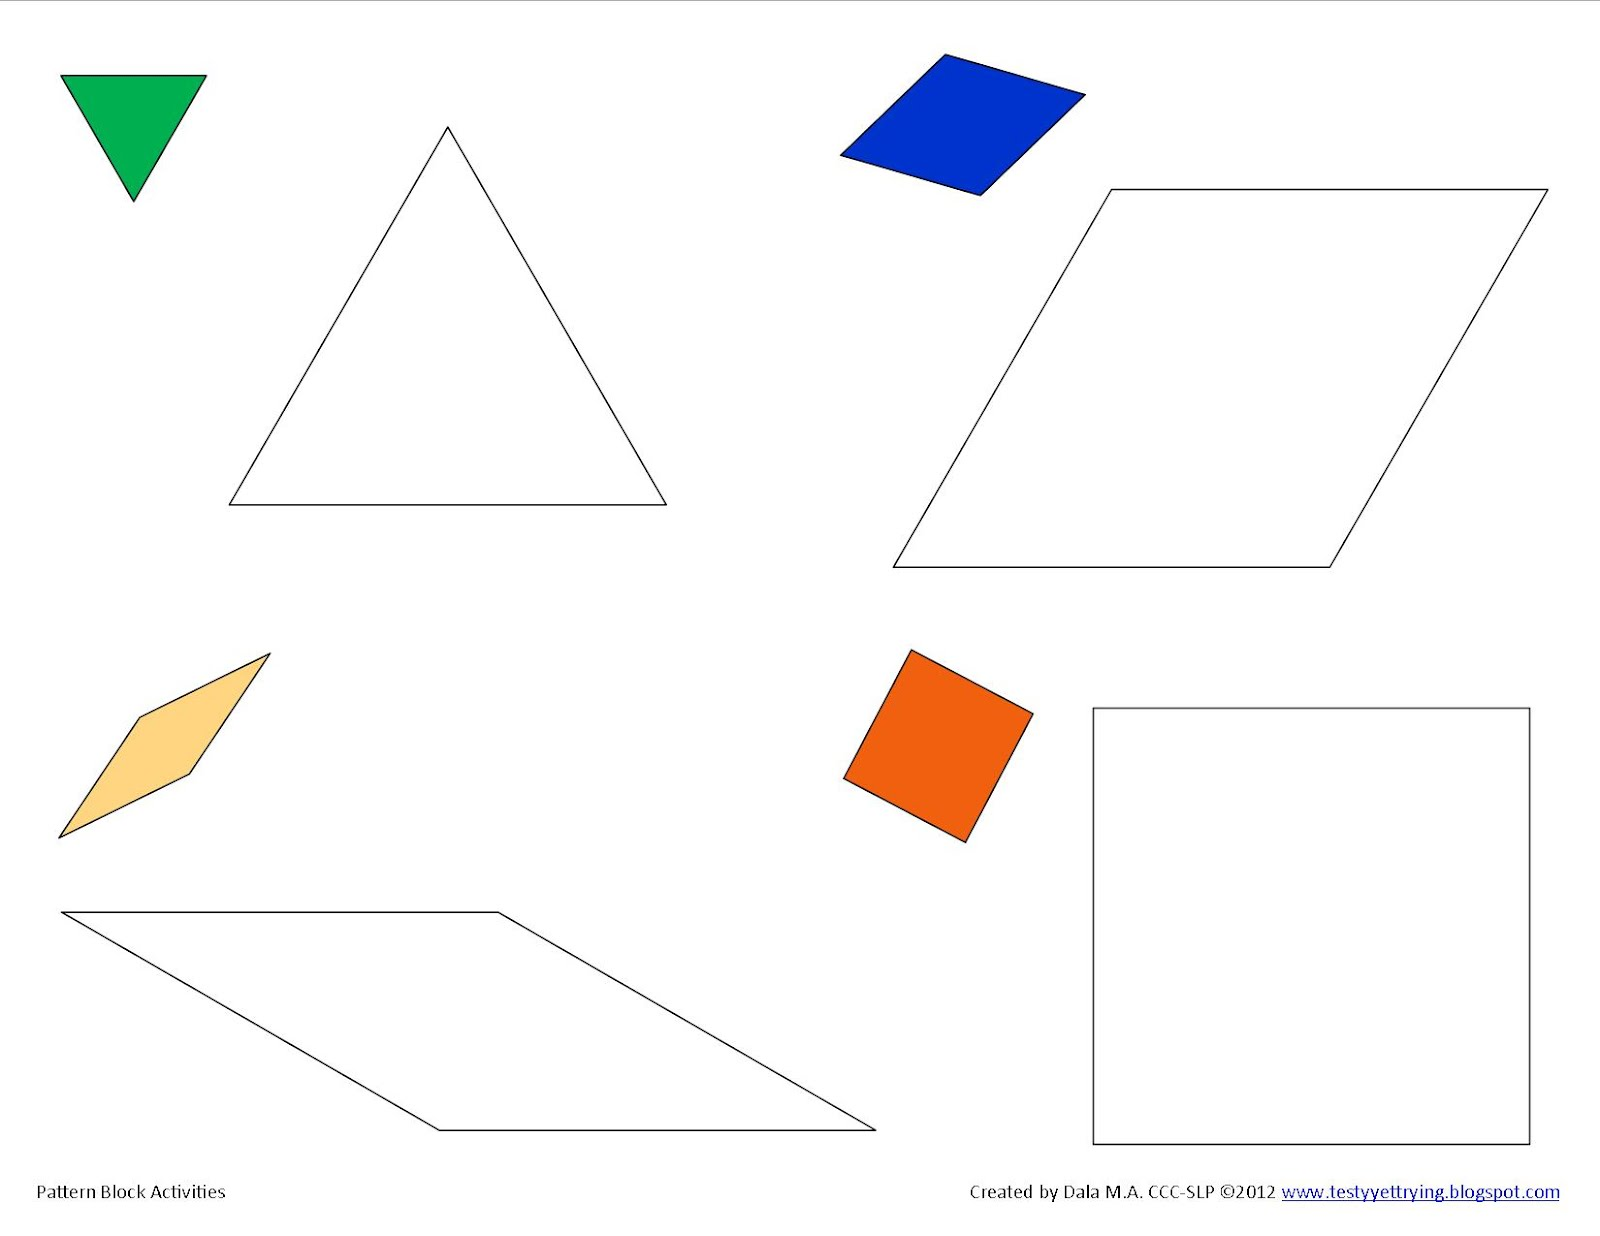 Testy yet trying: Printable Pattern Block Activity Sheets